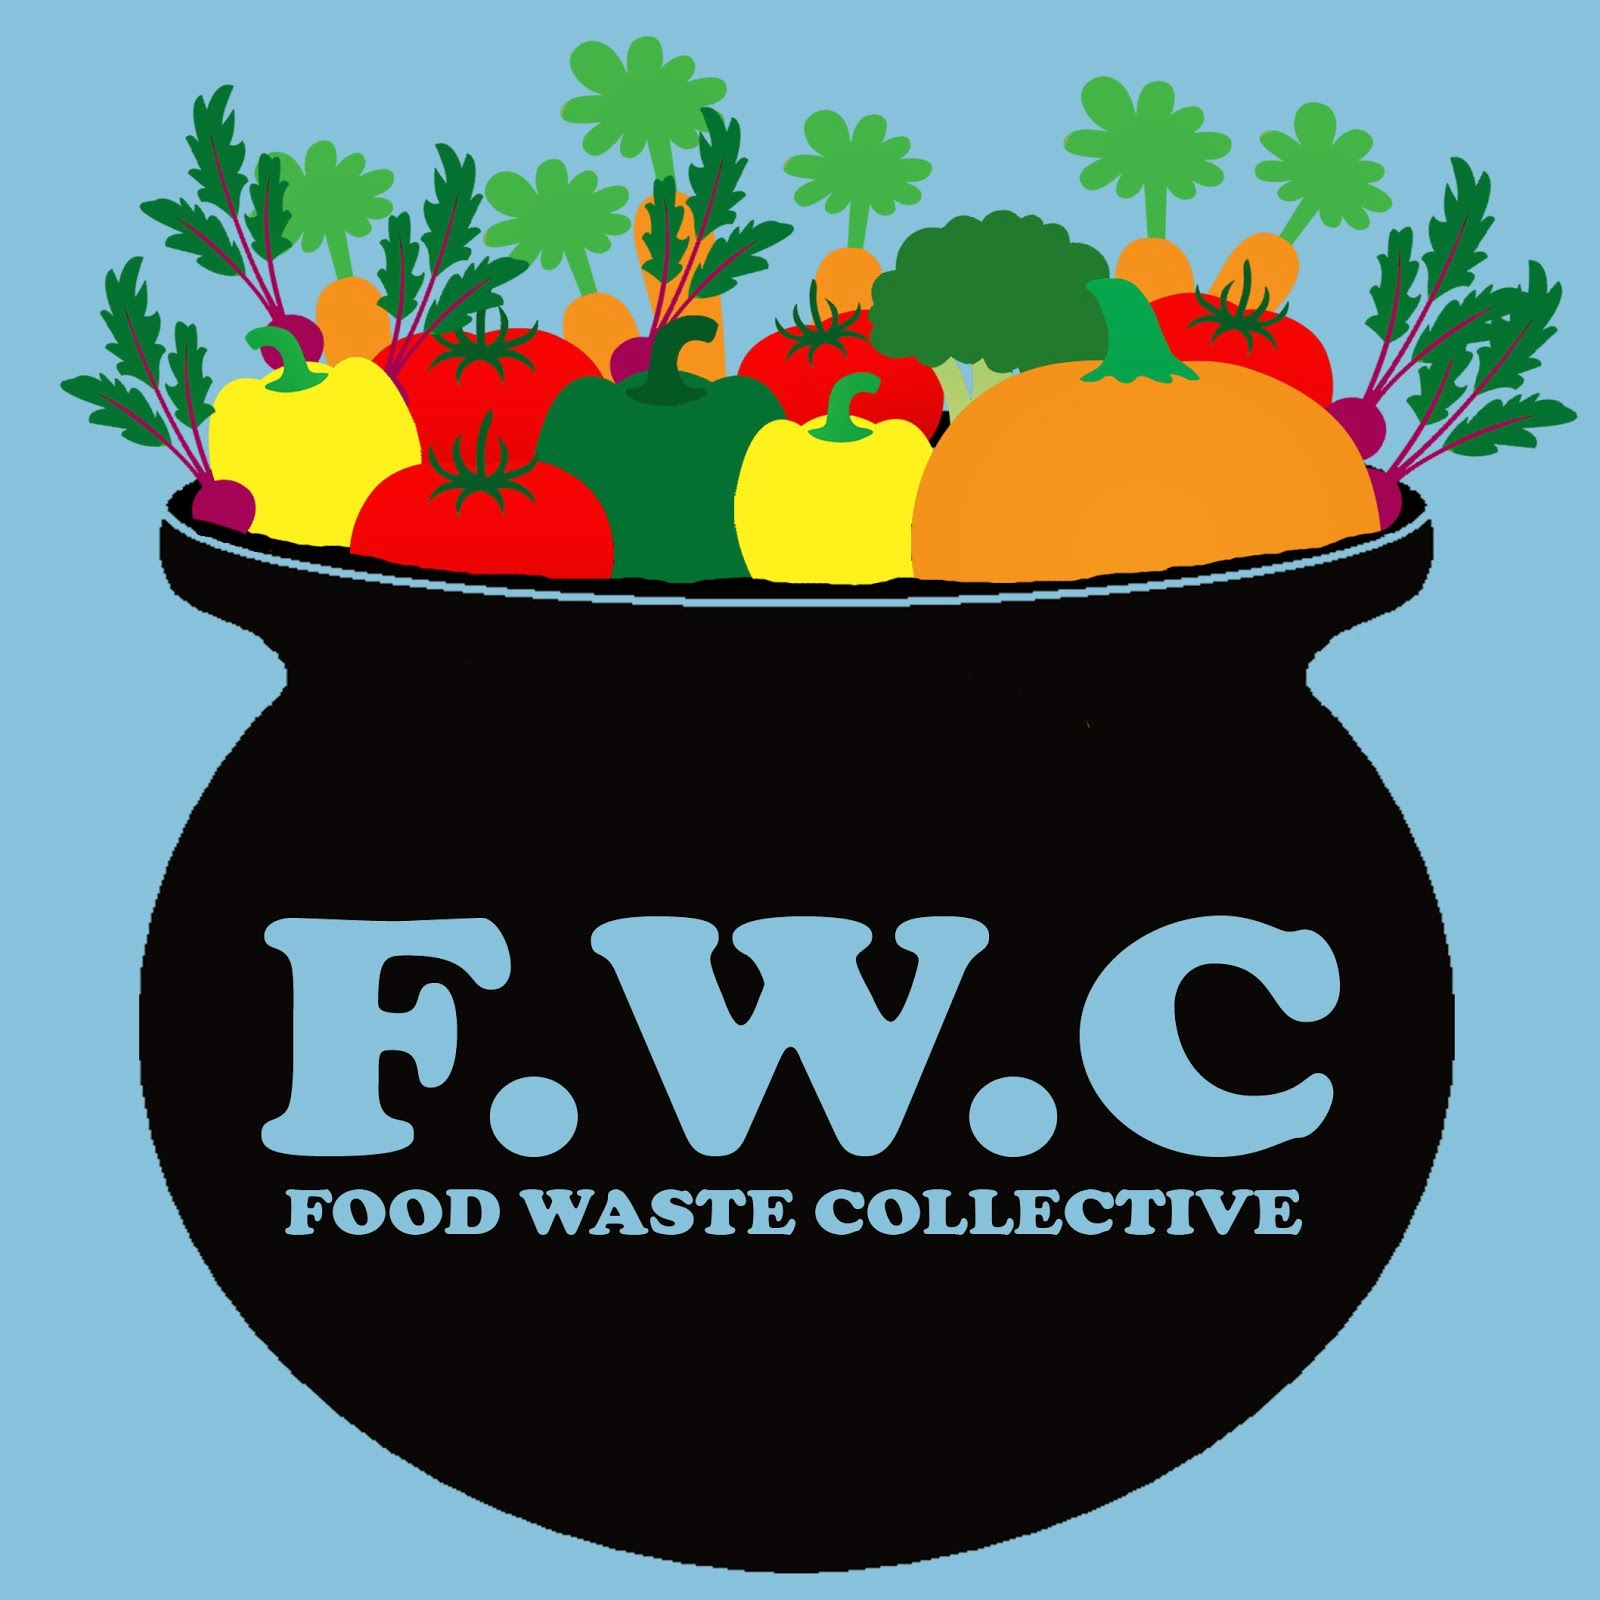 The Food Waste Collective